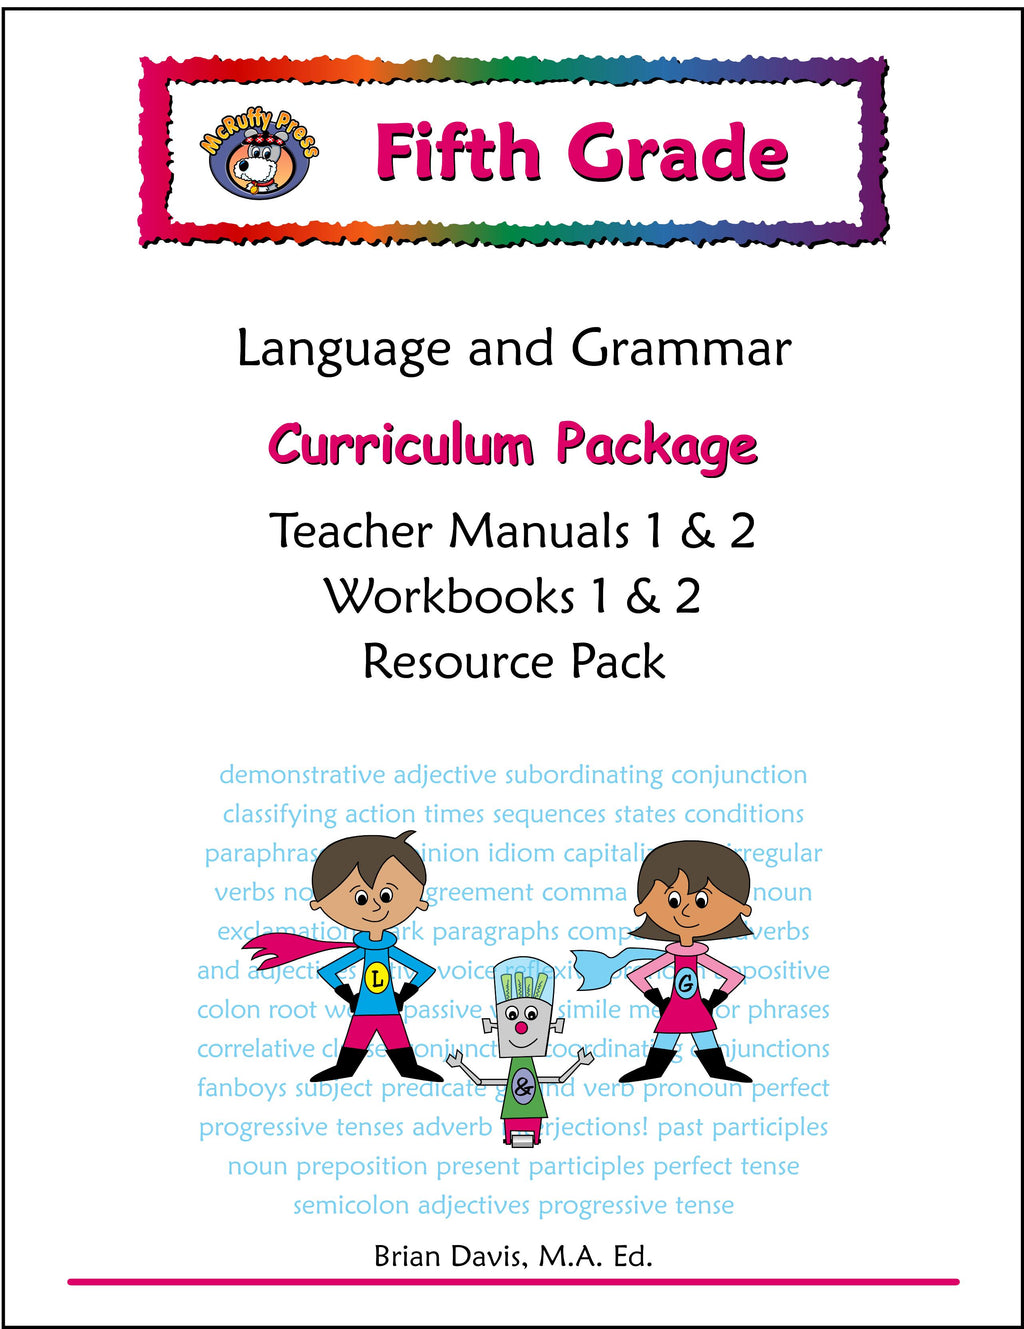 Fifth Grade Language and Grammar Curriculum Package - McRuffy Press